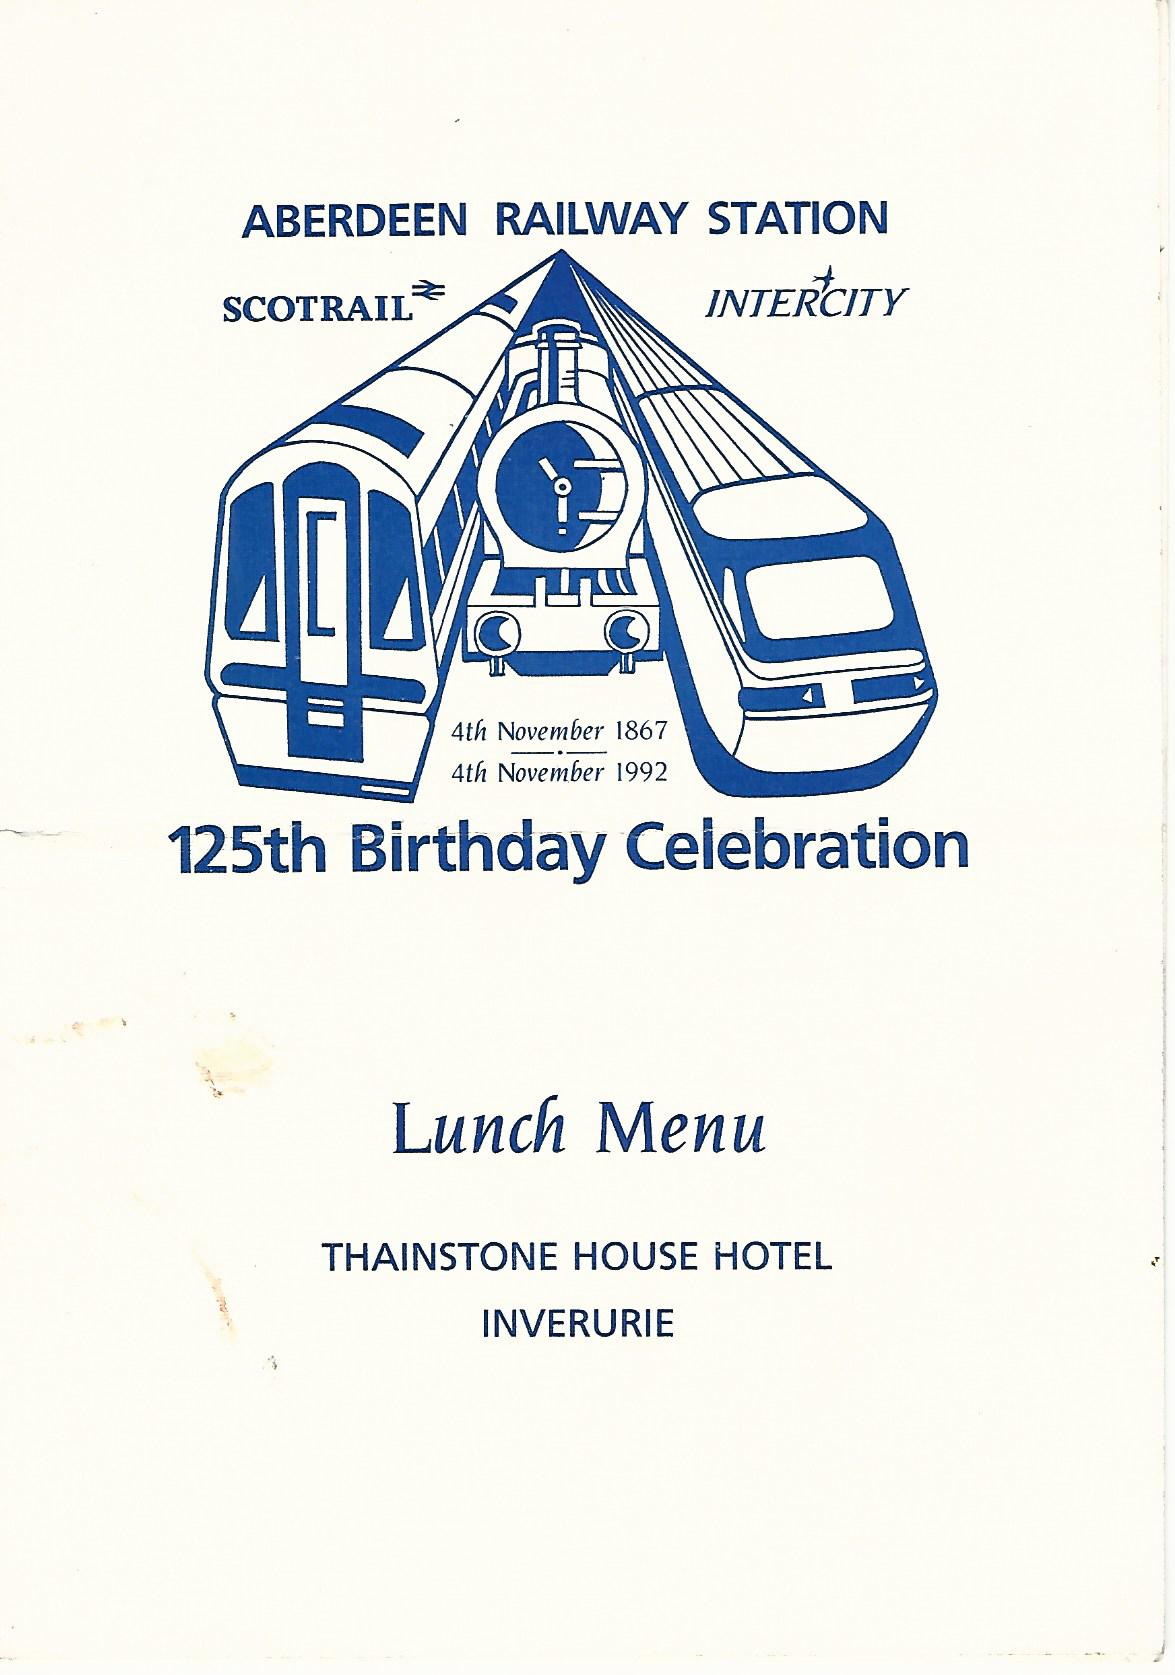 Image for Aberdeen Railway Station 125th Birthday Celebrations Lunch Menu at Thainstone House Hotel, Inverurie.